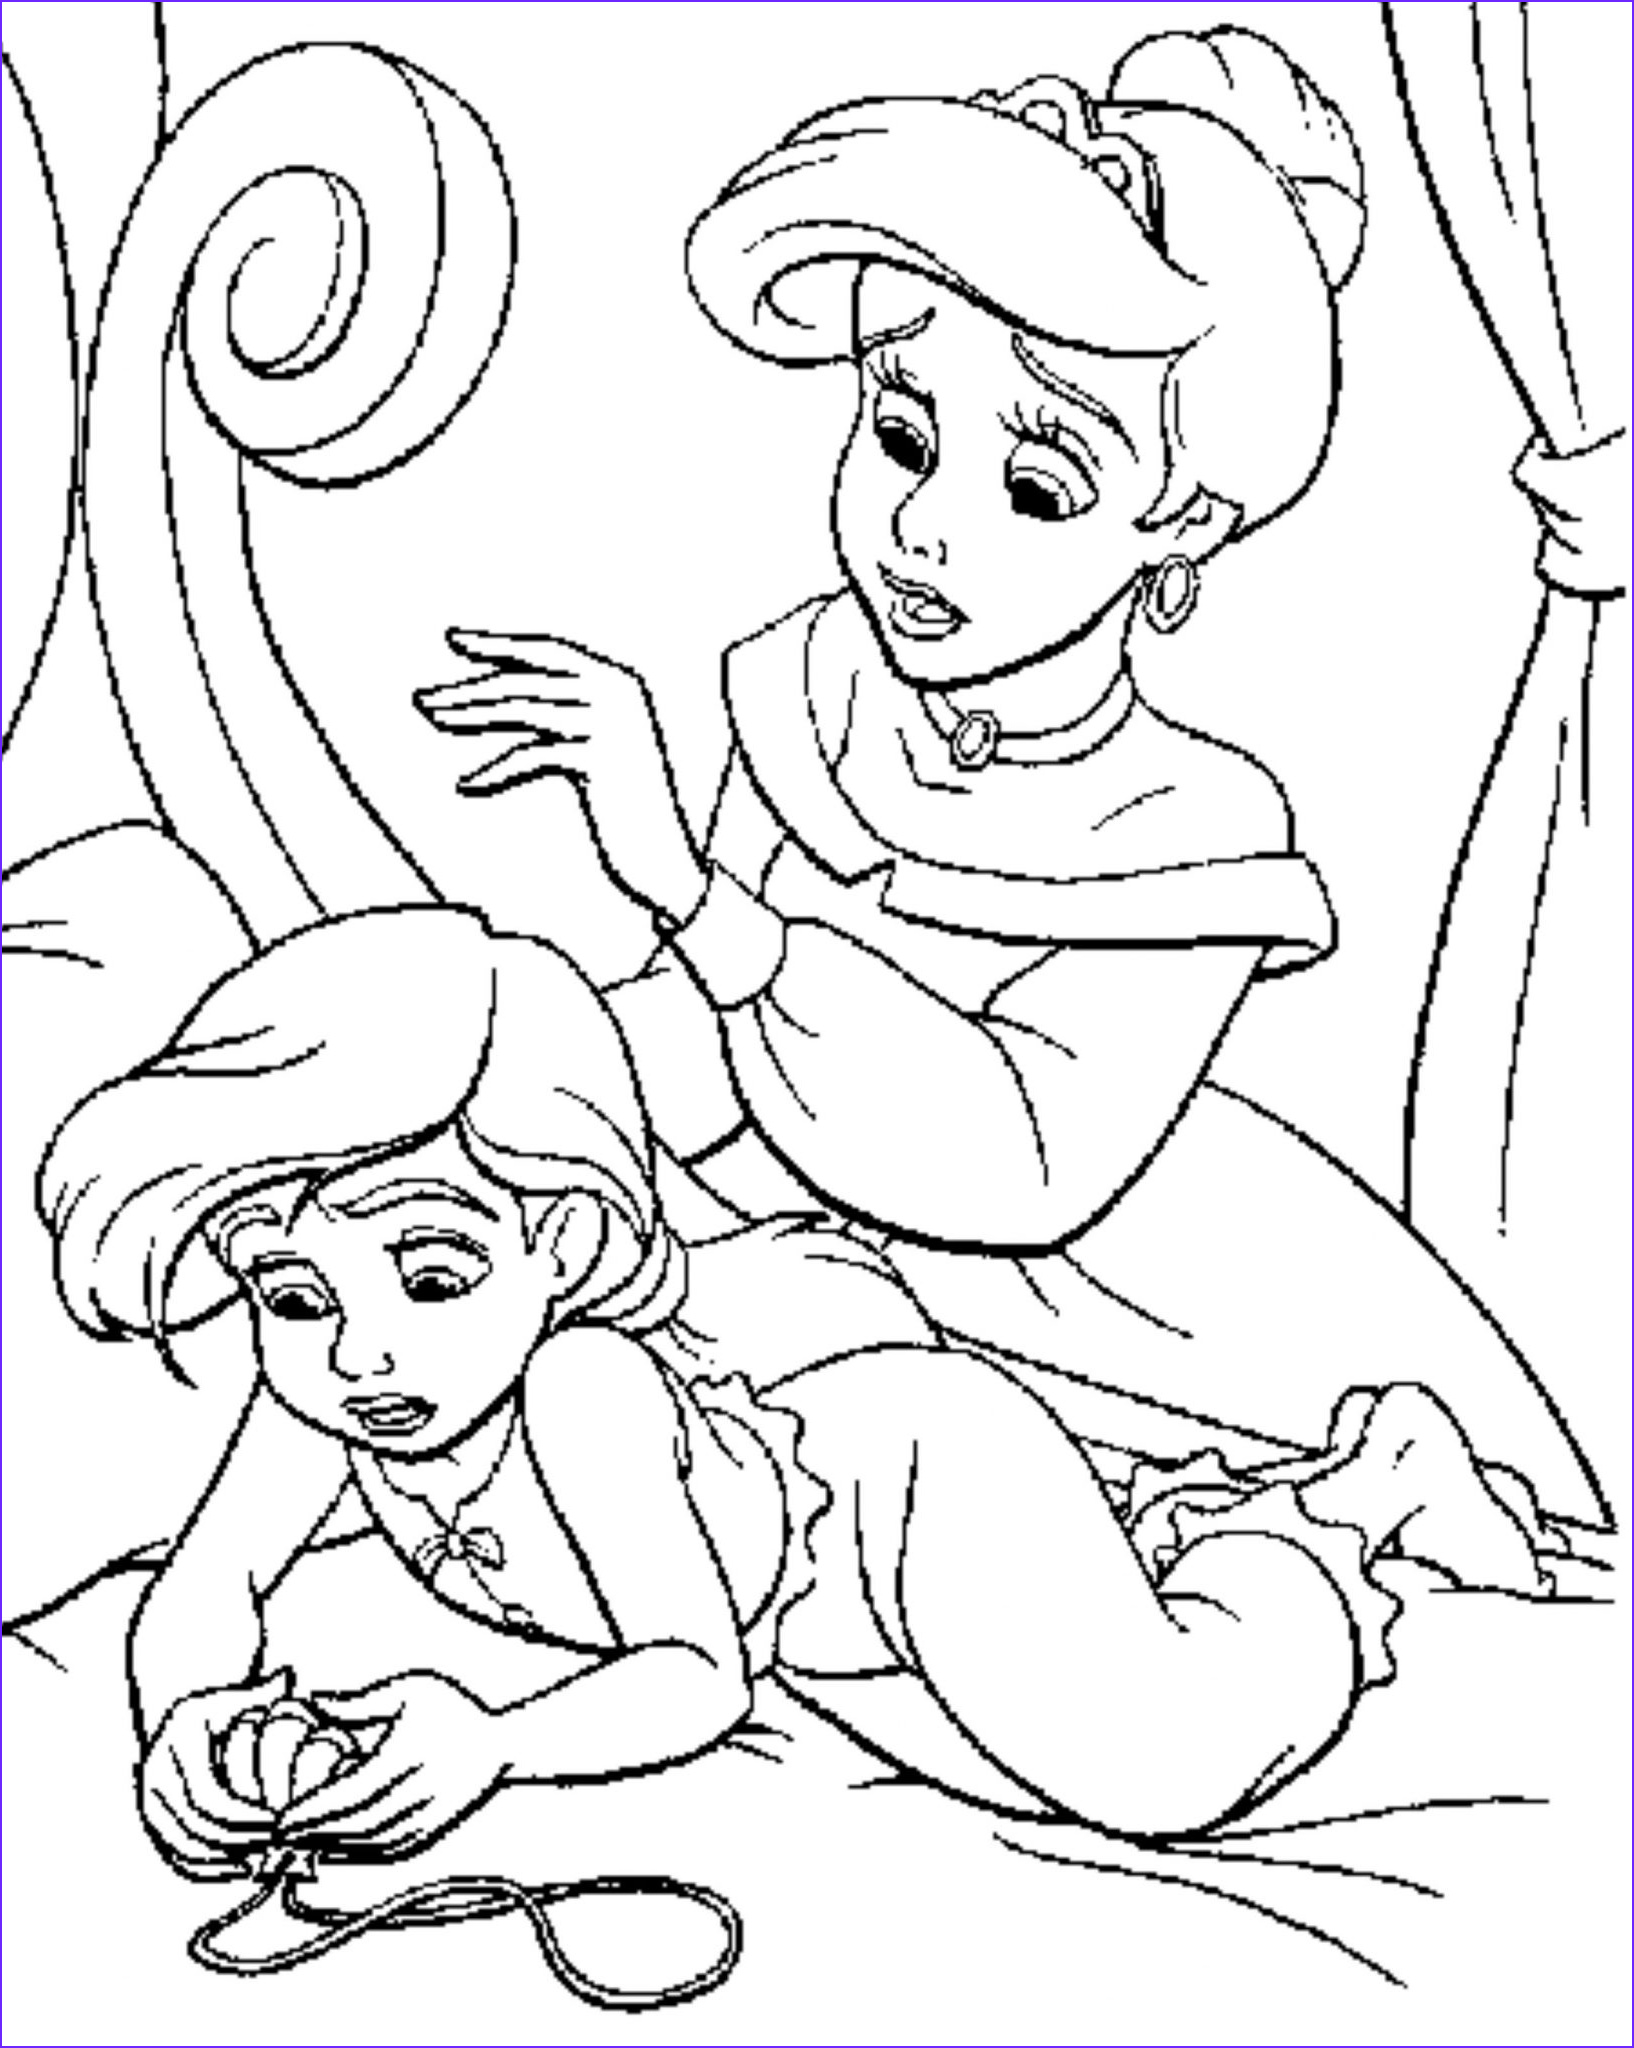 Coloring Page Mermaid Elegant Photography Print & Download Find the Suitable Little Mermaid